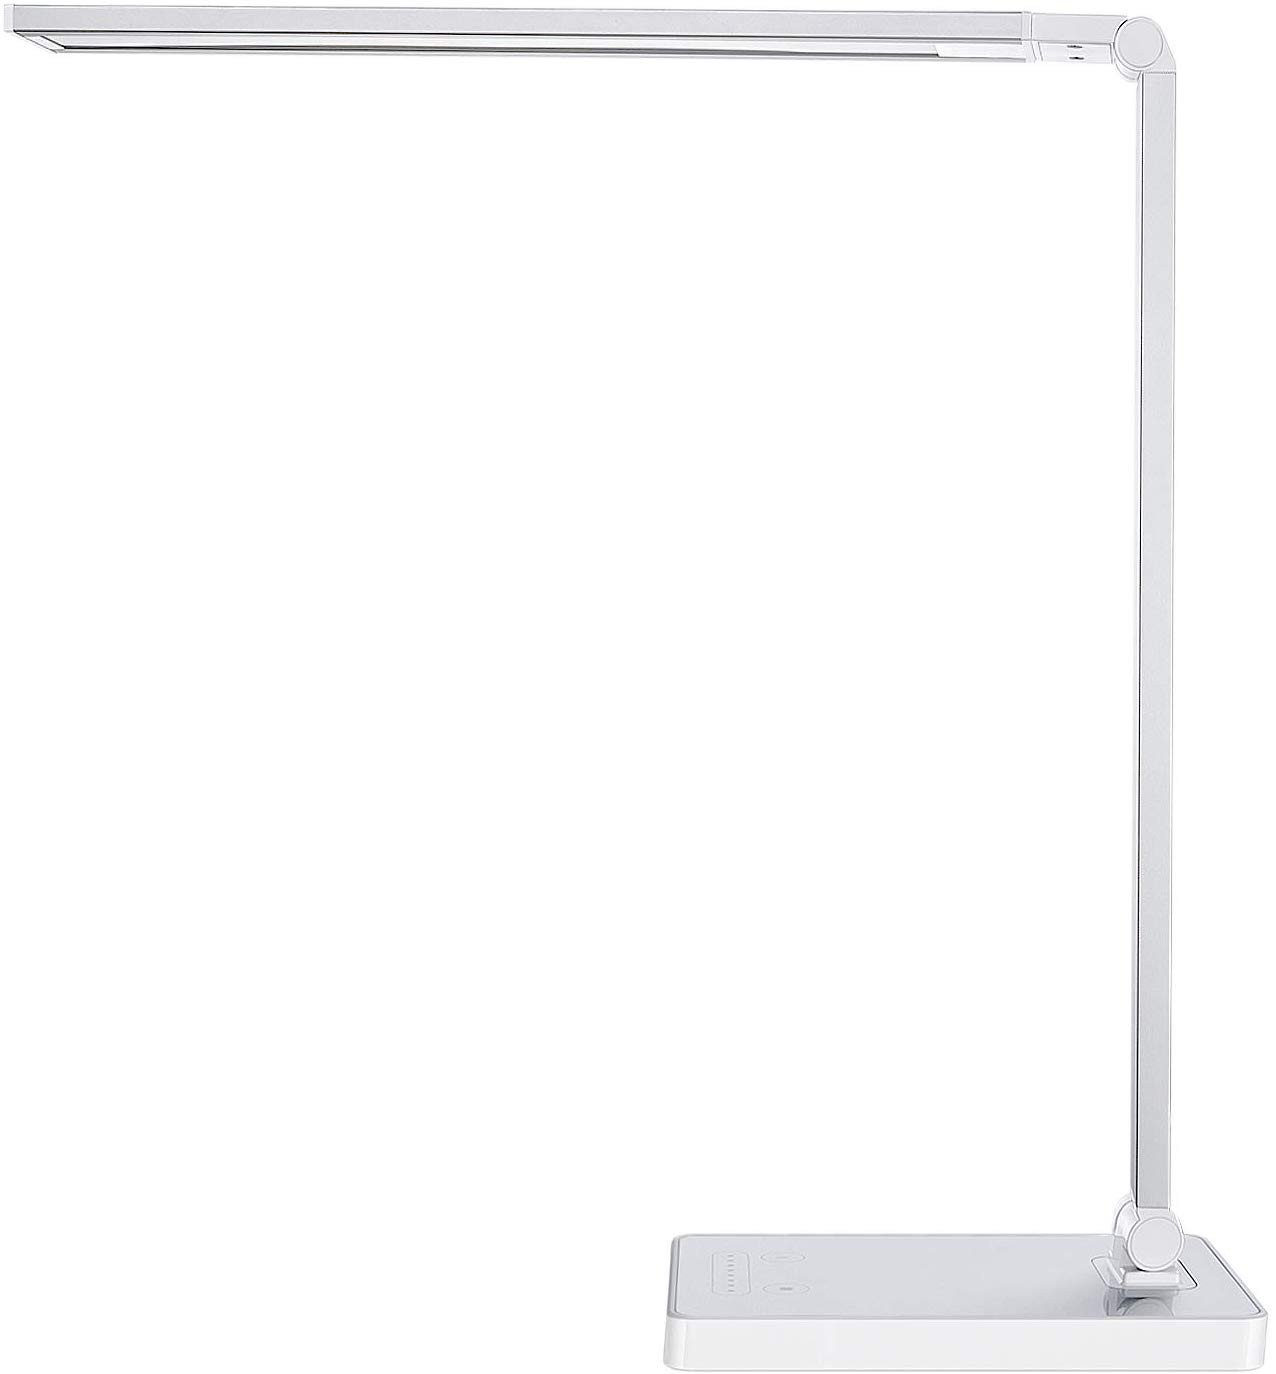 Touch Table Lamps Bedroom New Phive Dimmable Led Desk Lamp with Fast Charging Usb Port touch Control 8 Level Dimmer 4 Lighting Modes Aluminum Body Eye Care Led Table Lamp